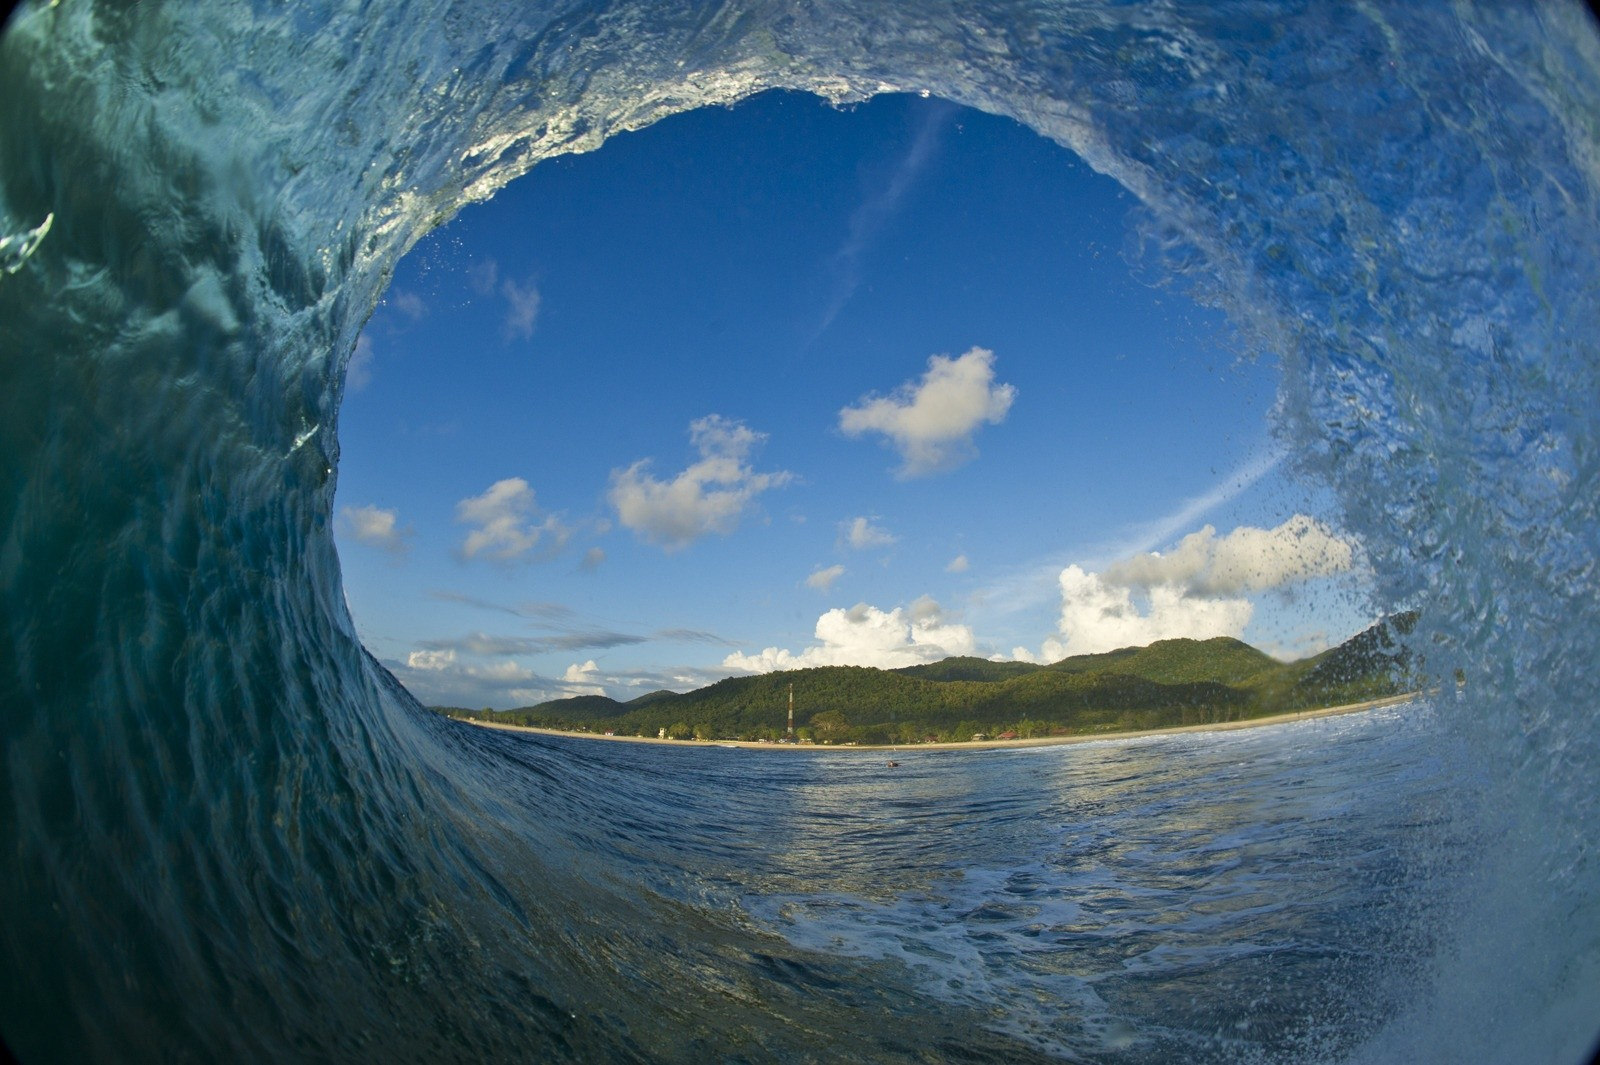 Diogo d'Orey's photo of One Palm Point